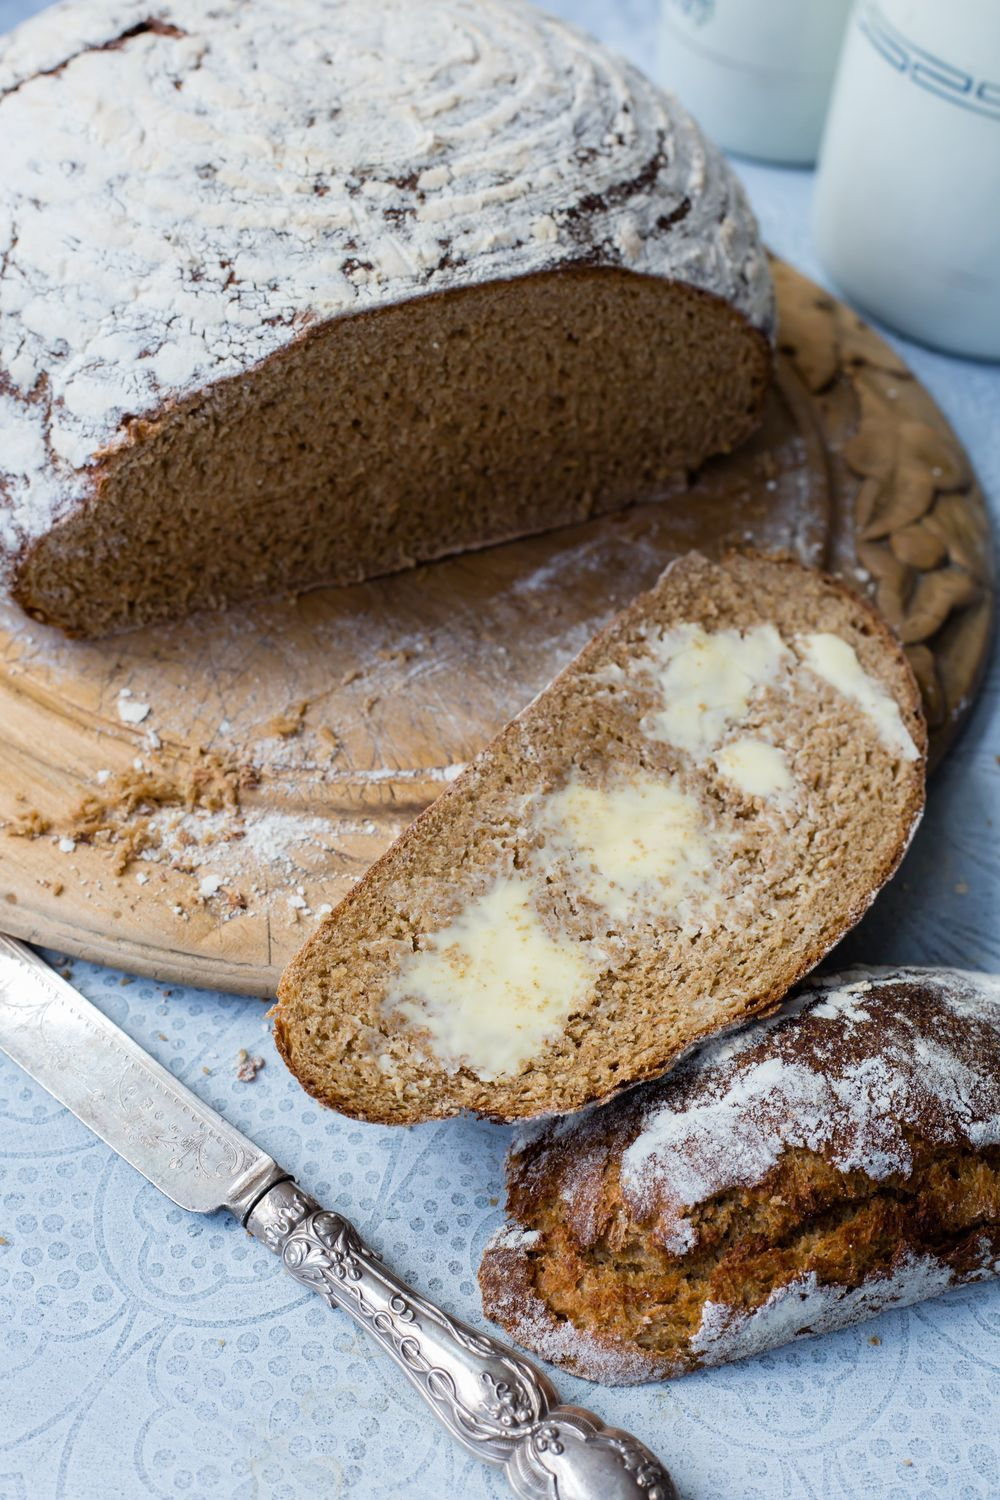 Bread Time eBook - Recipes for Thermomix - thermishop.com.au